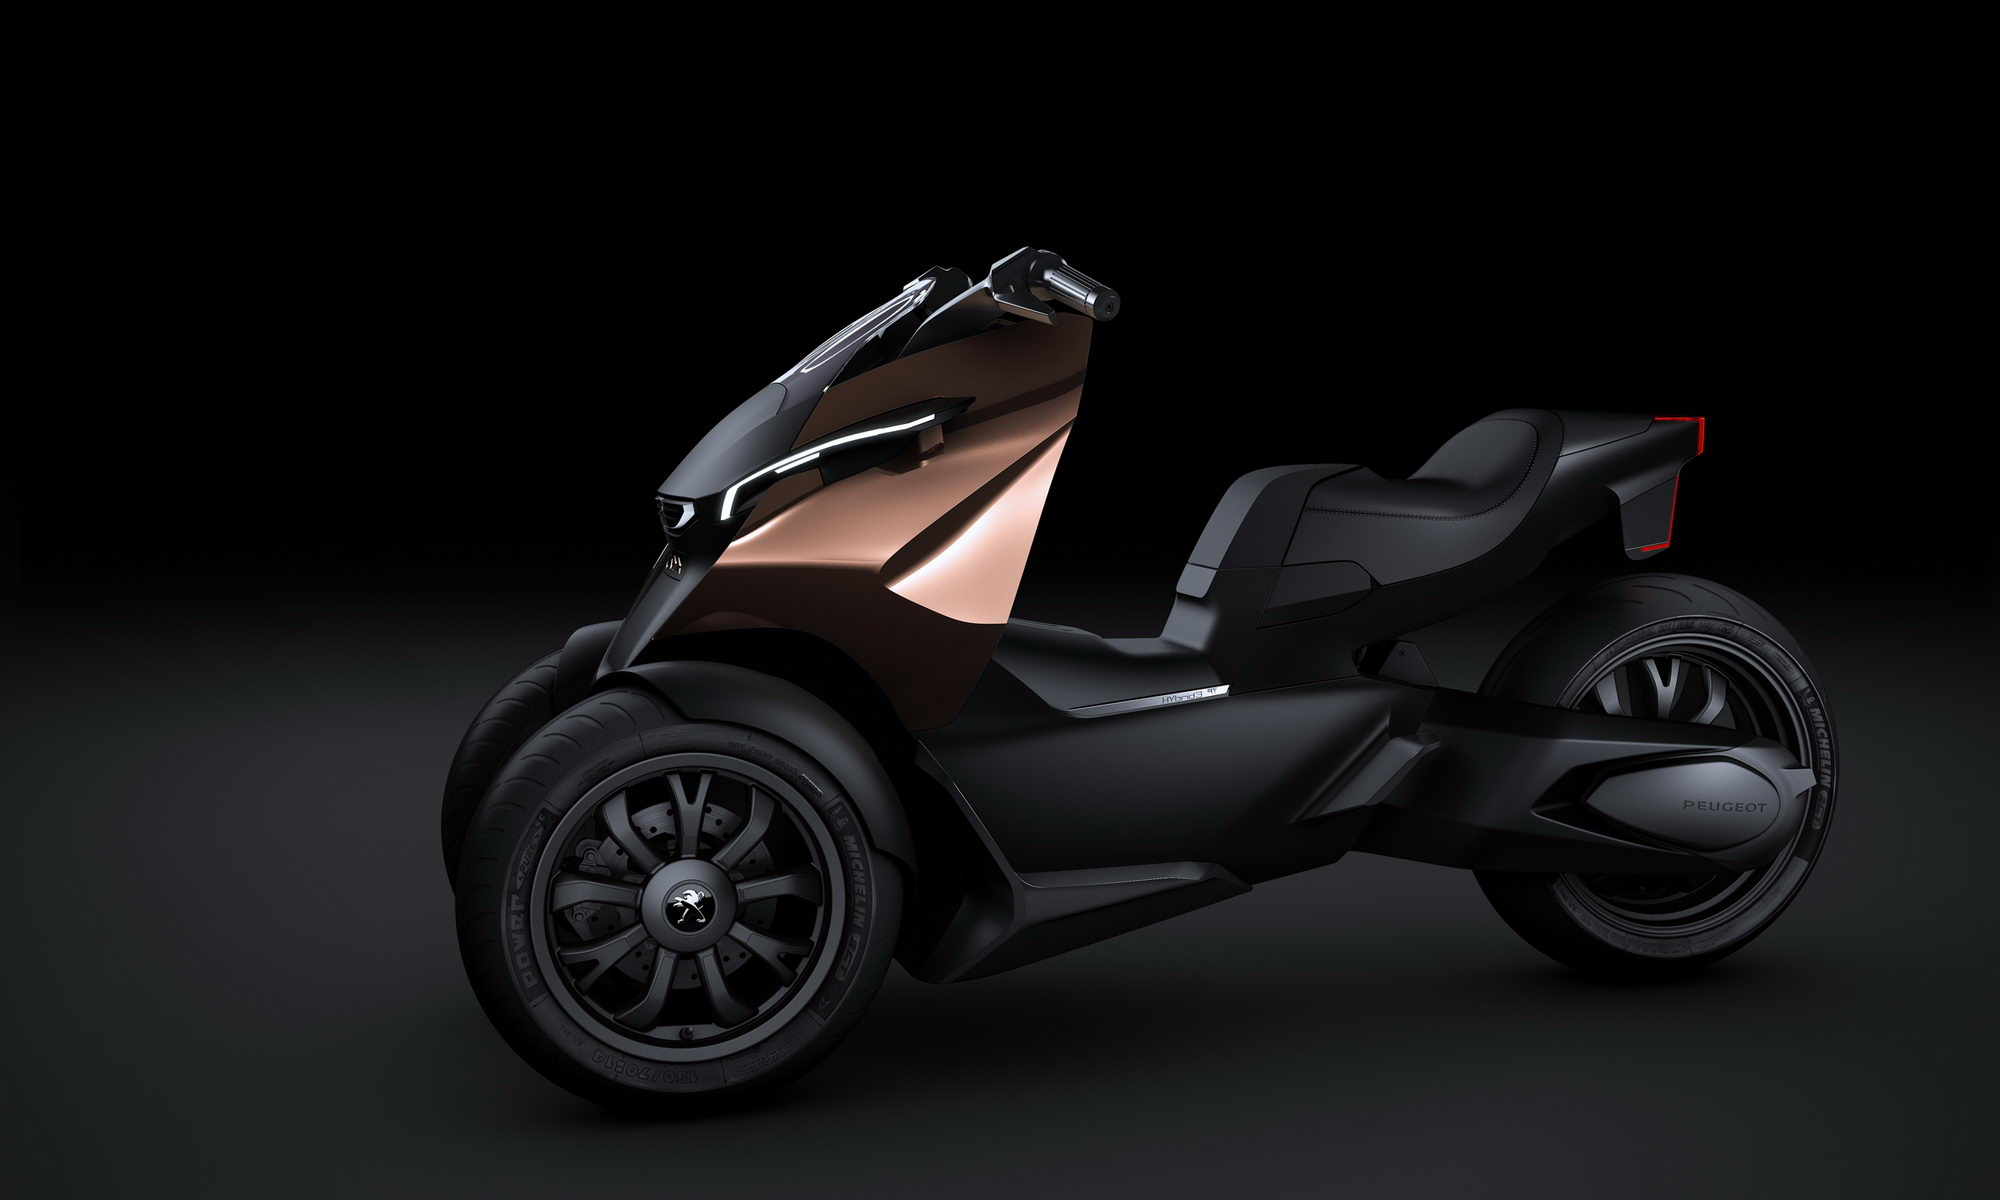 Onyx Projects - Photos - Peugeot ONYX Supertrike Concept